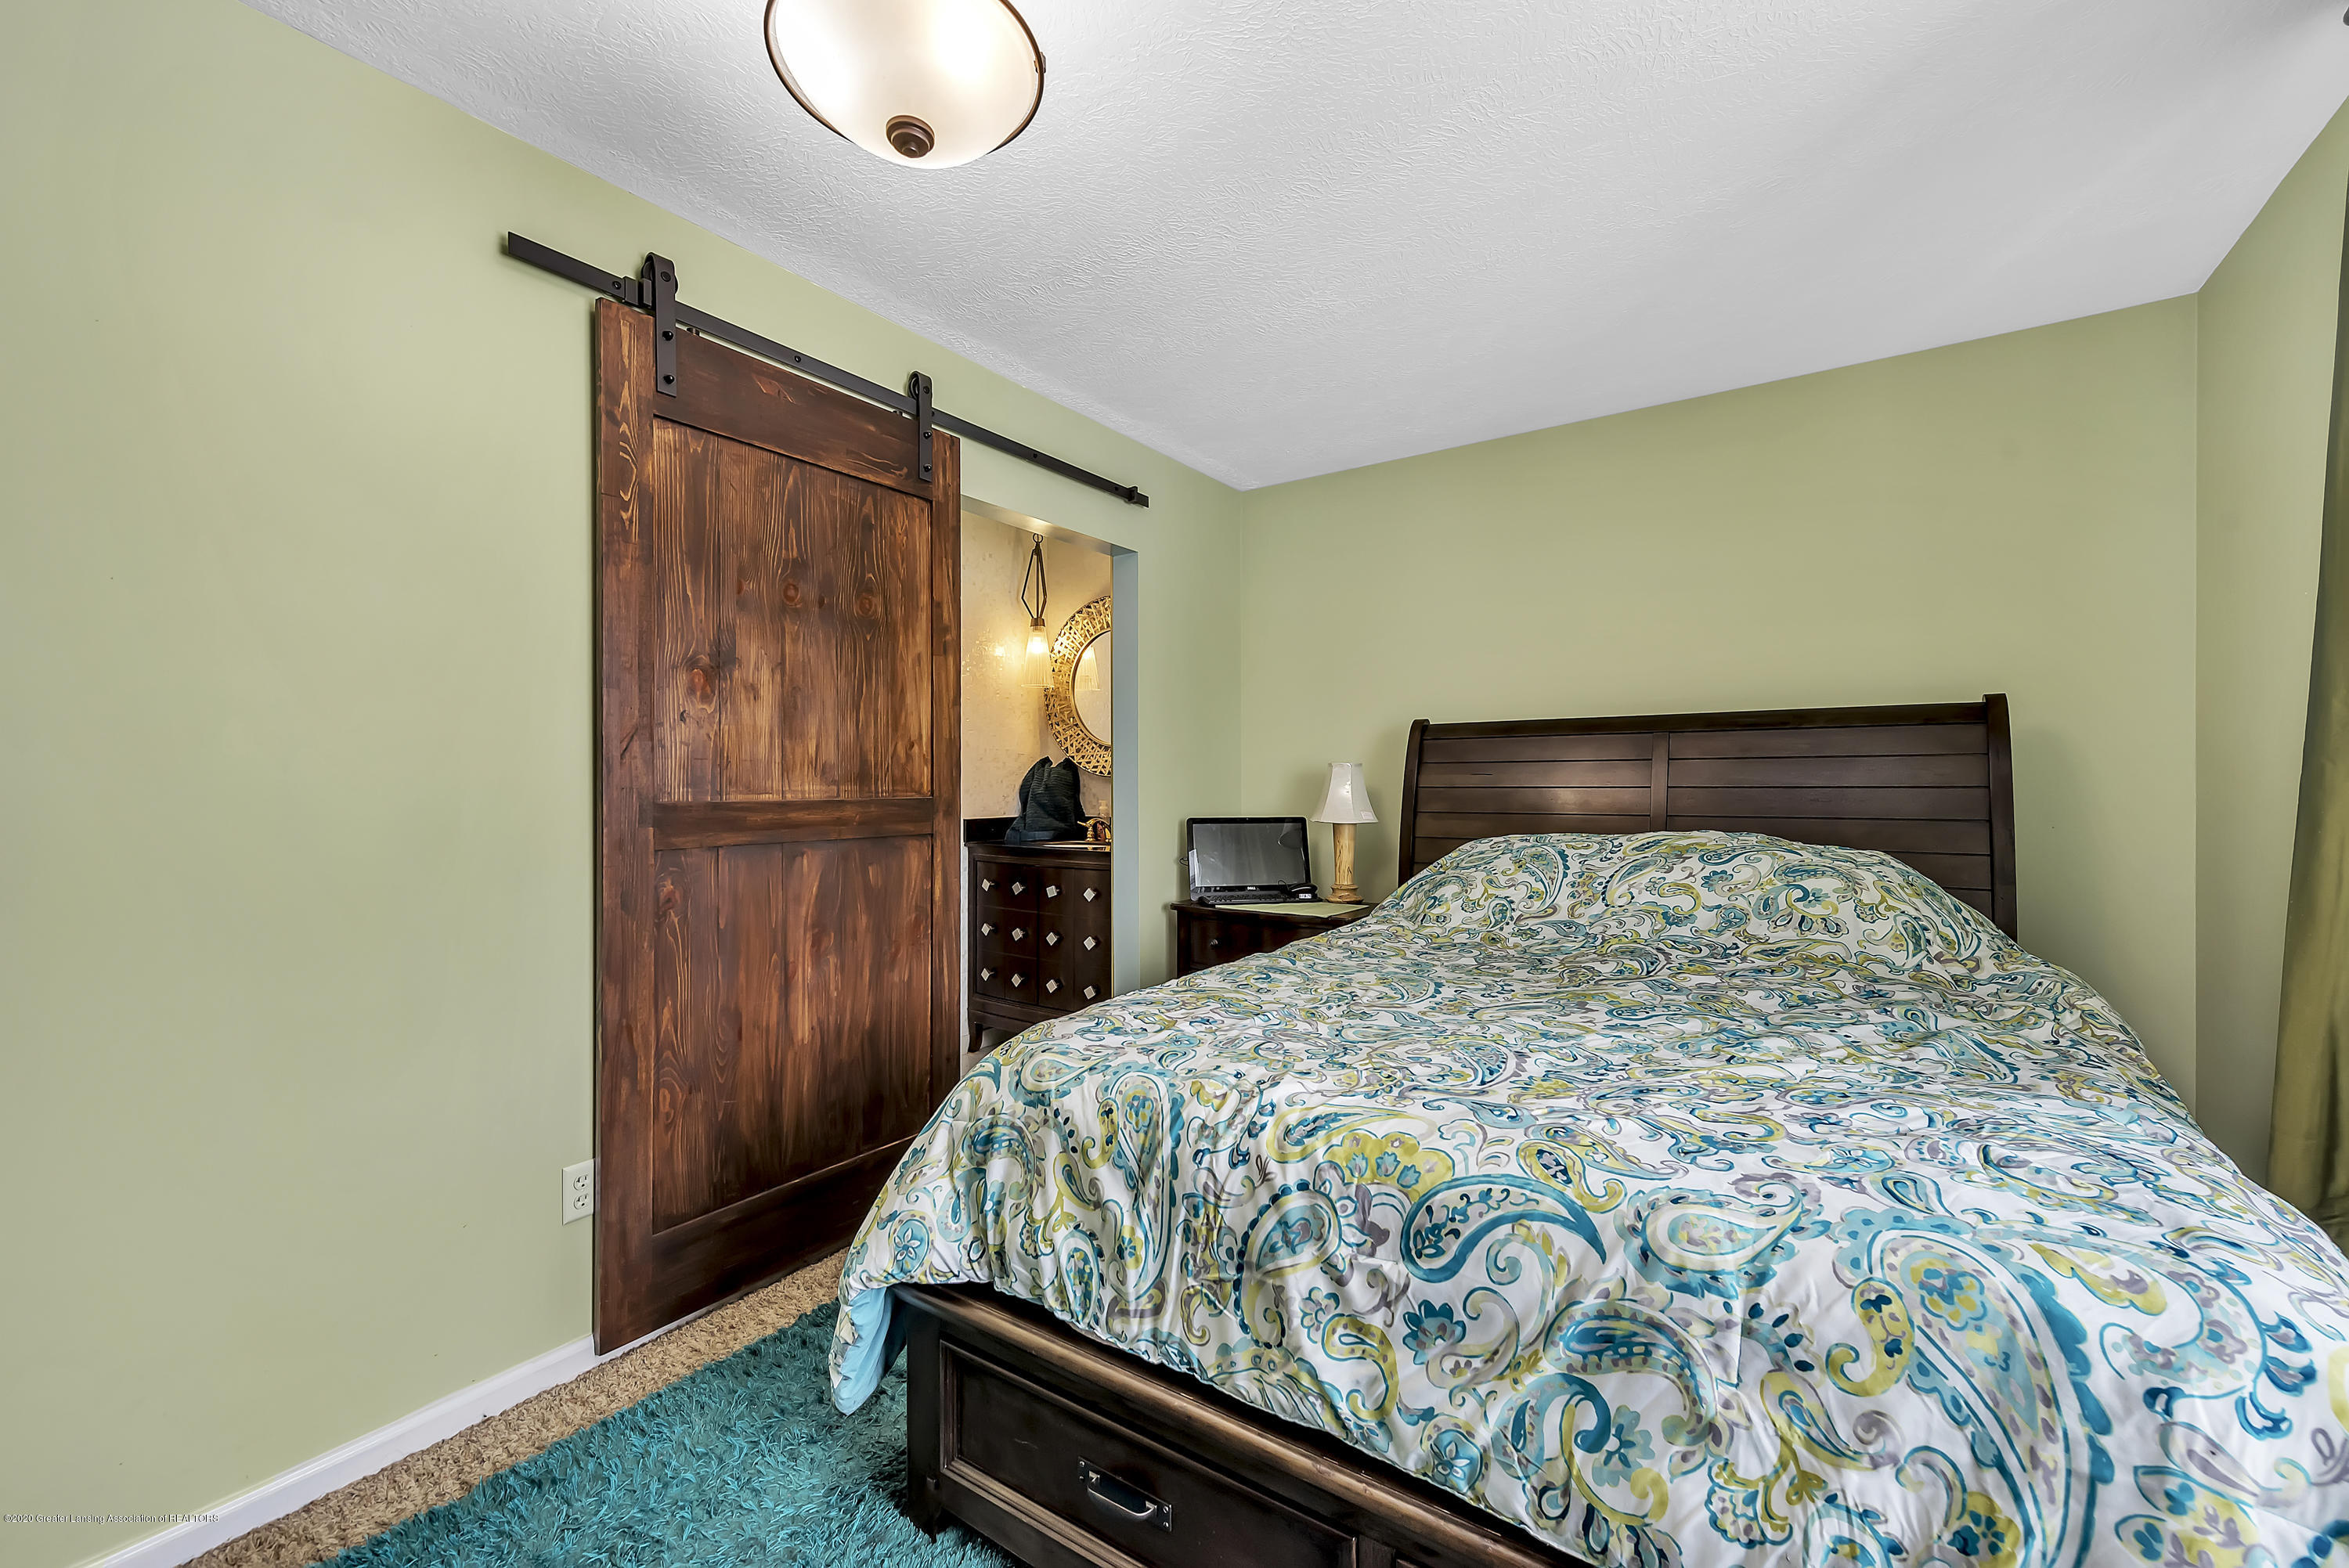 2450 Featherstone Dr - 2450-Featherstone-Dr-WindowStill-Real-Es - 20